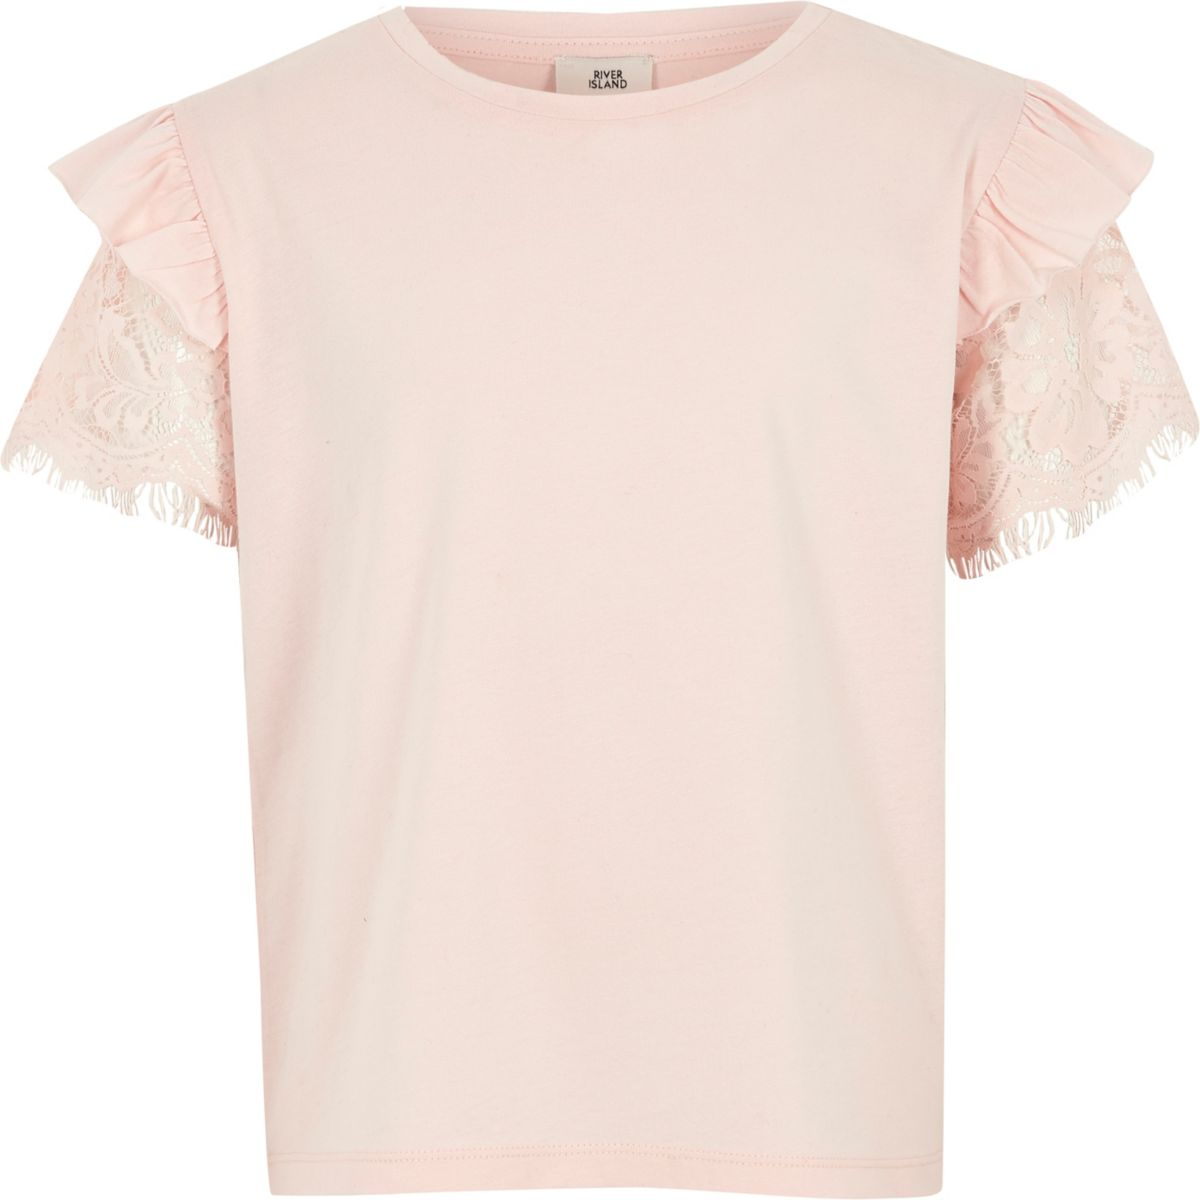 Girls pink frill lace short sleeve t shirt t shirts for Frill sleeve t shirt